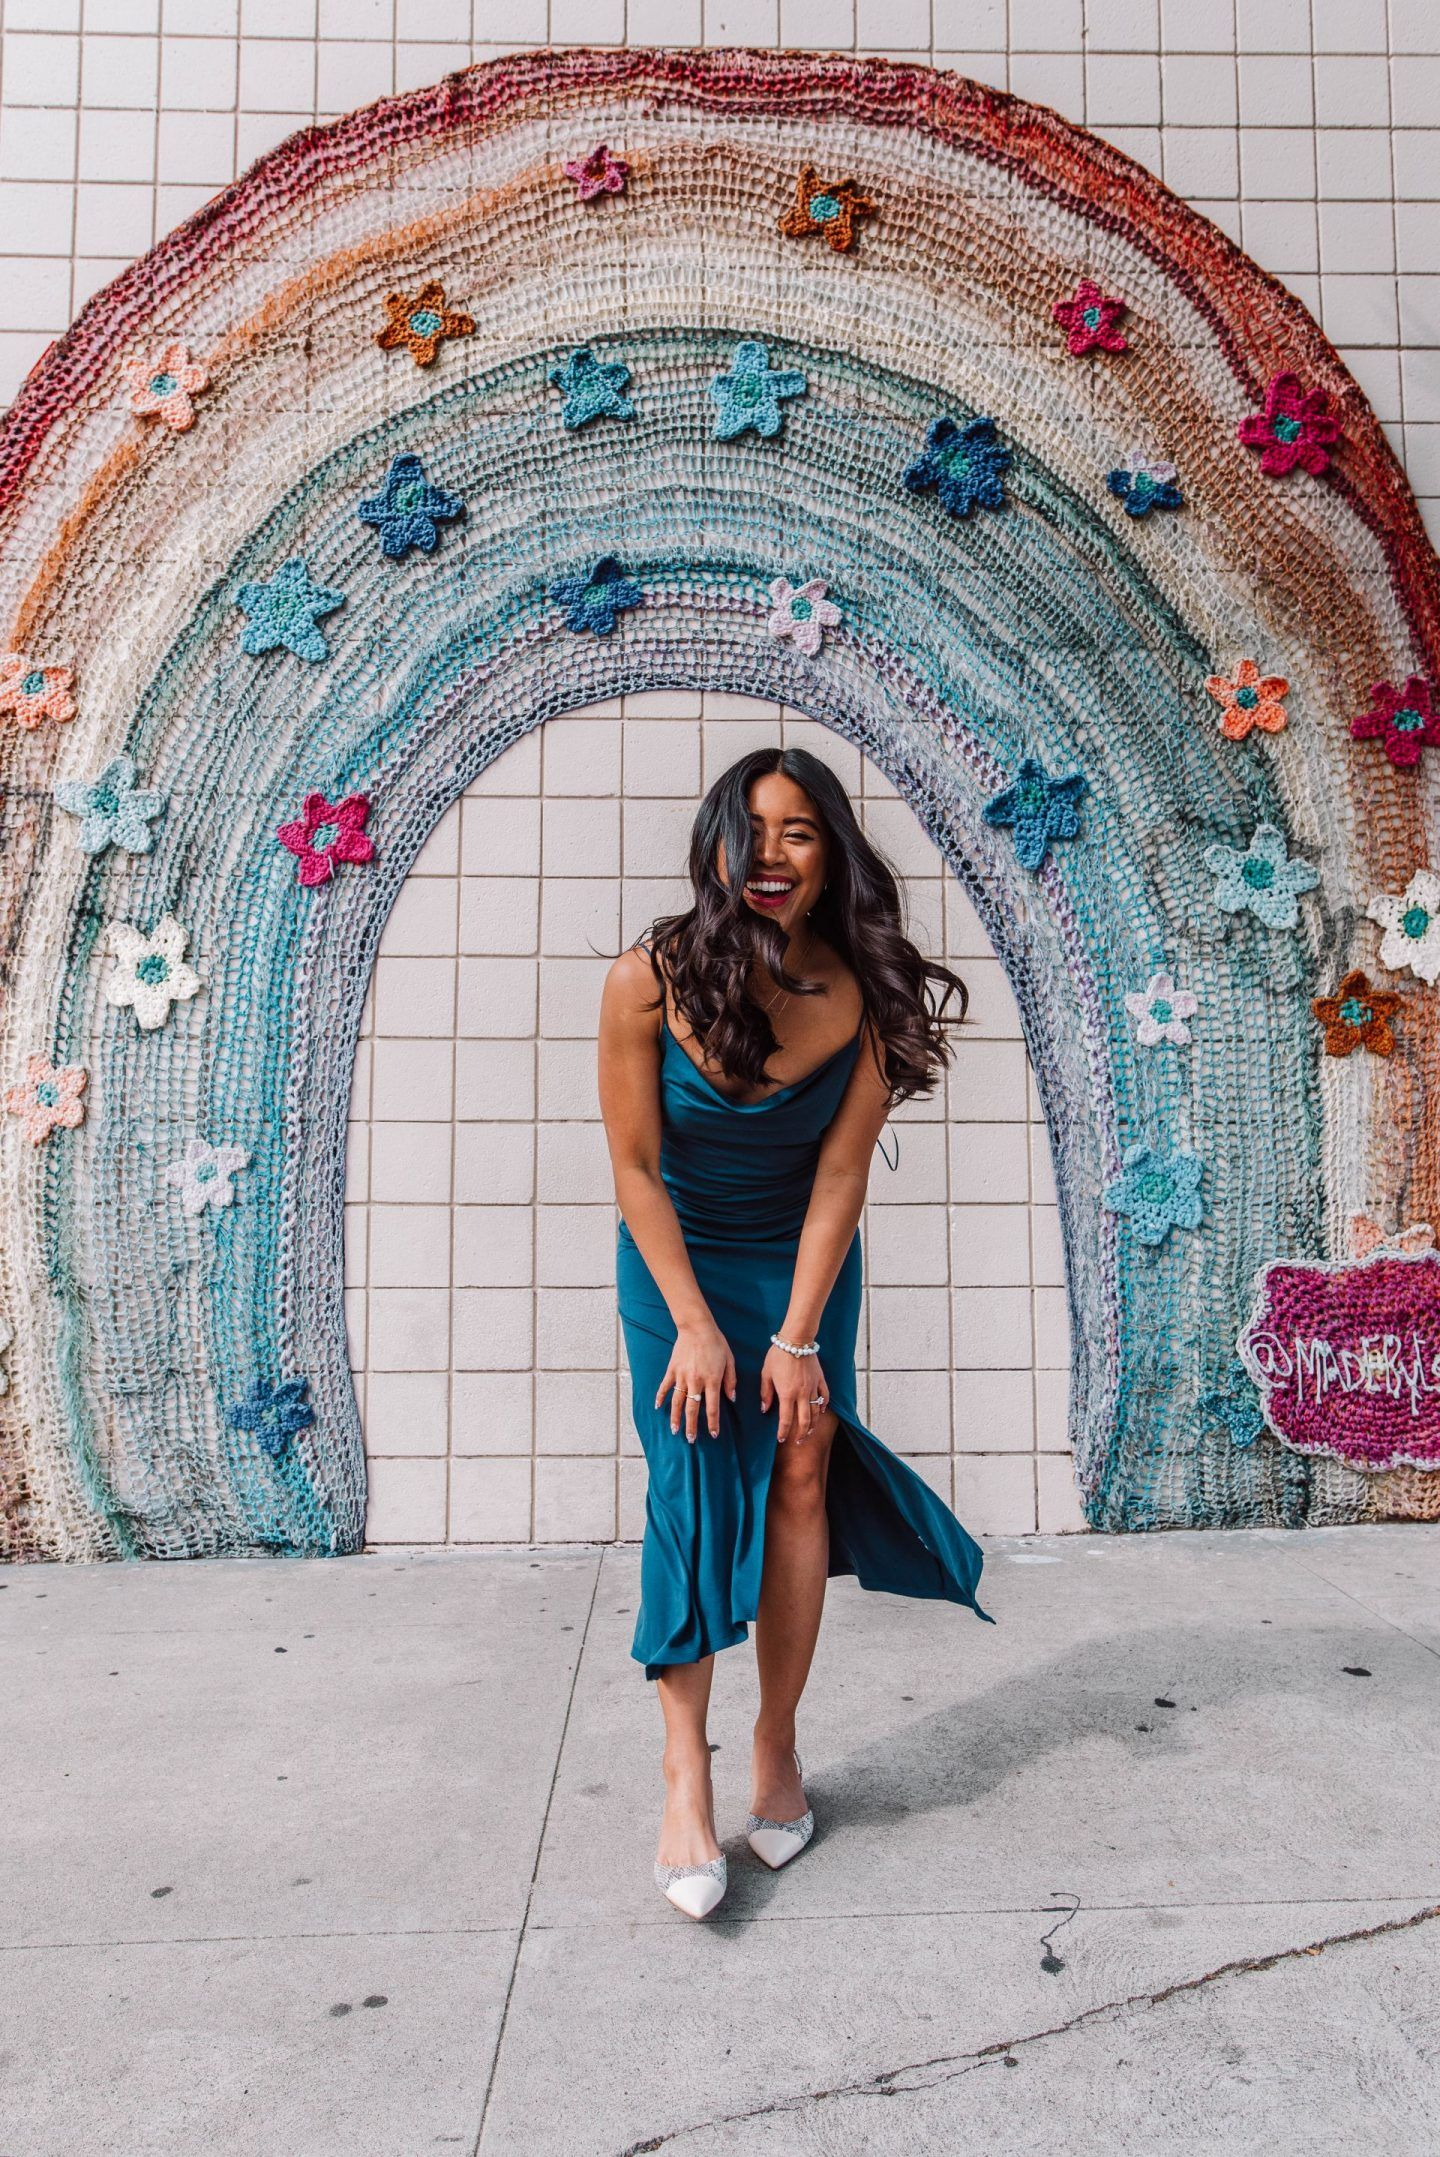 Las most instagrammable places melrose avenue edition in